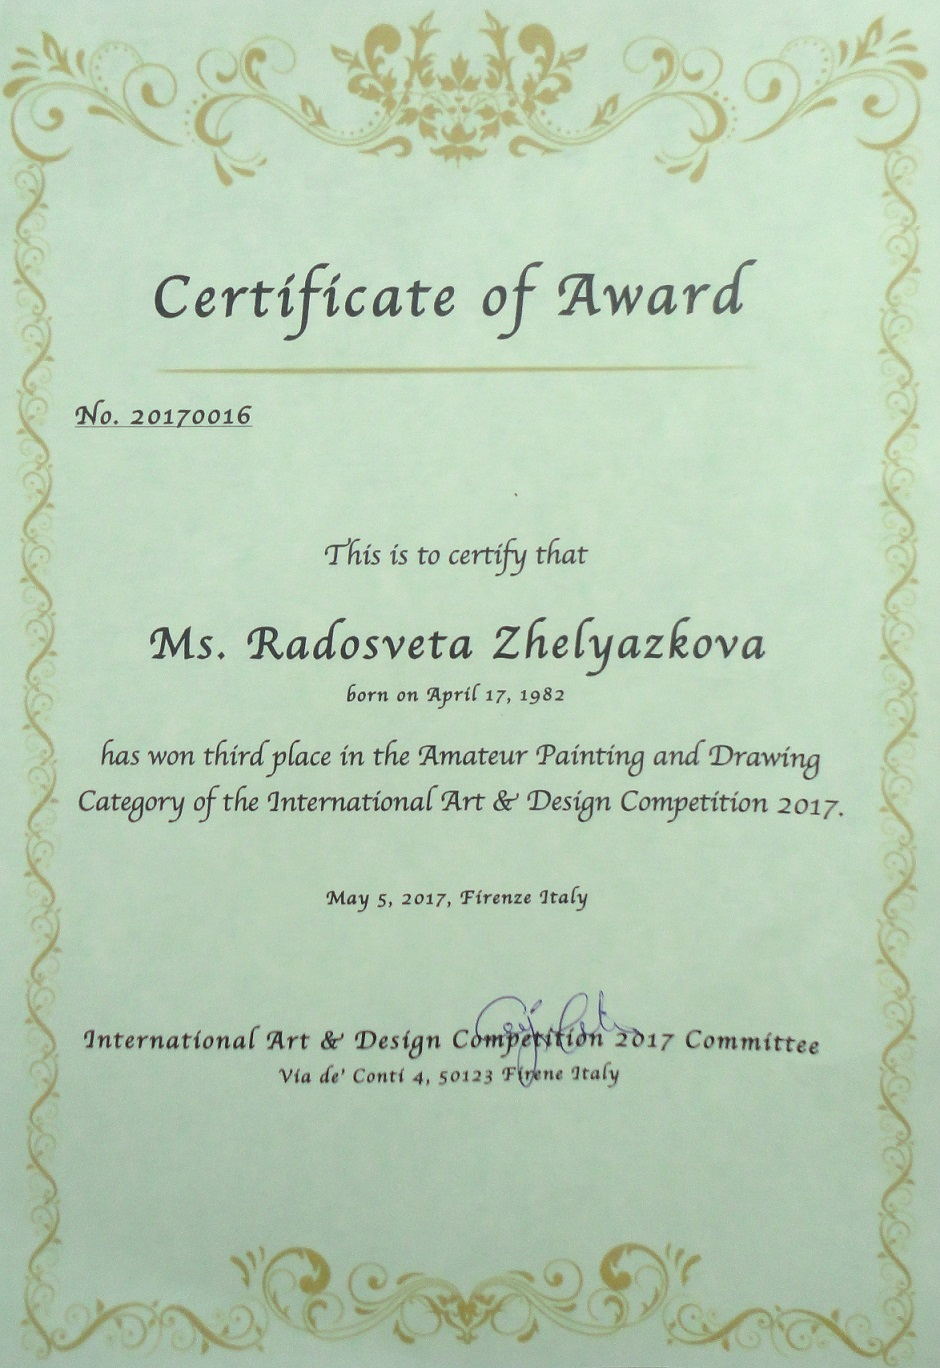 awards and certificates received from competitions world wide